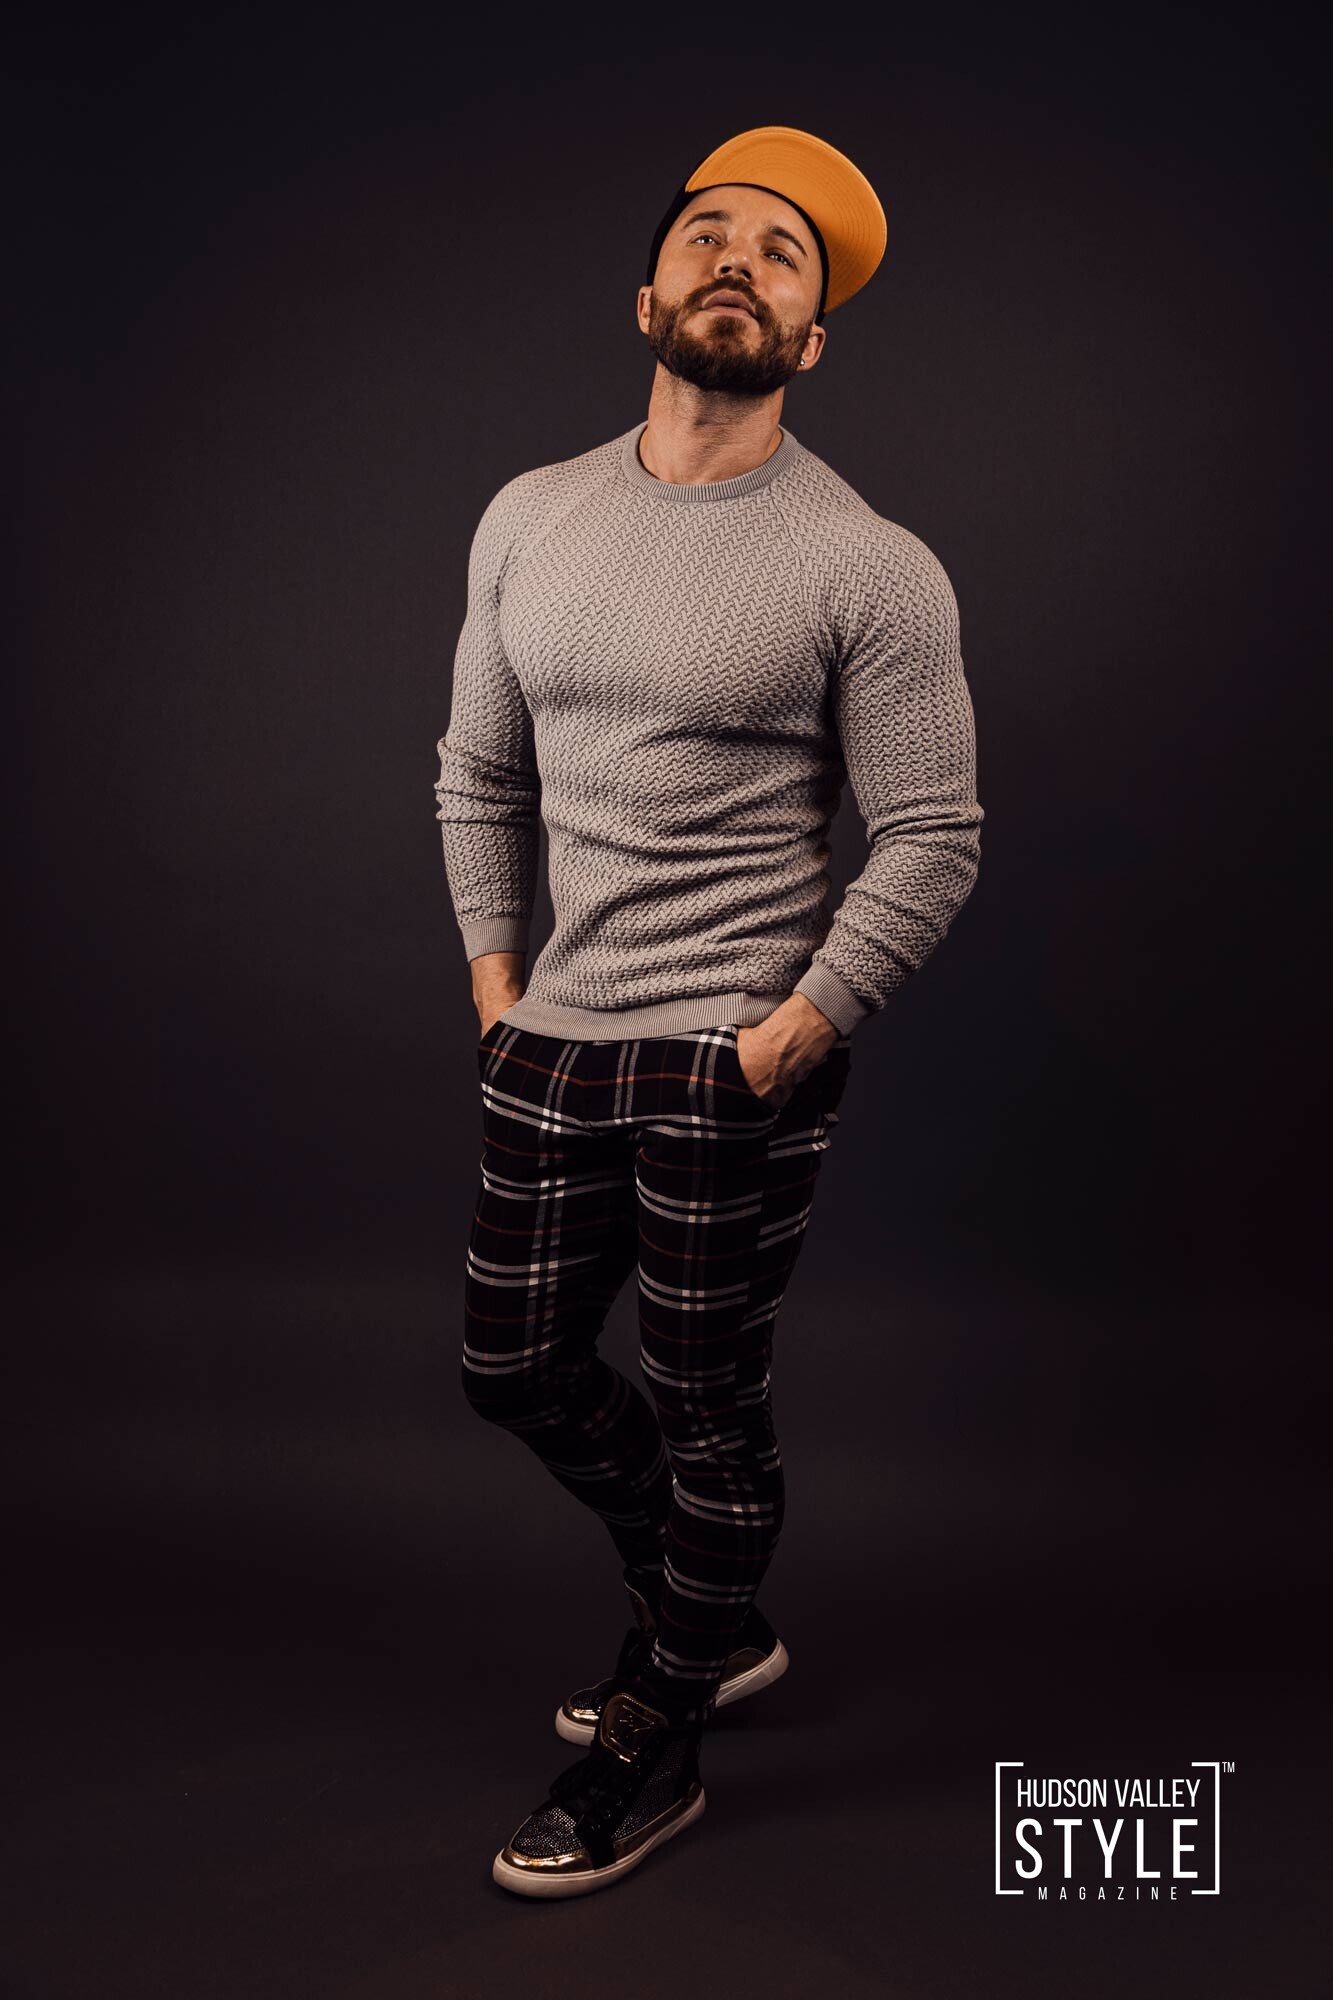 Lifestyle and Portrait Photography by Maxwell Alexander (Hudson Valley, New York) – Duncan Avenue Studios